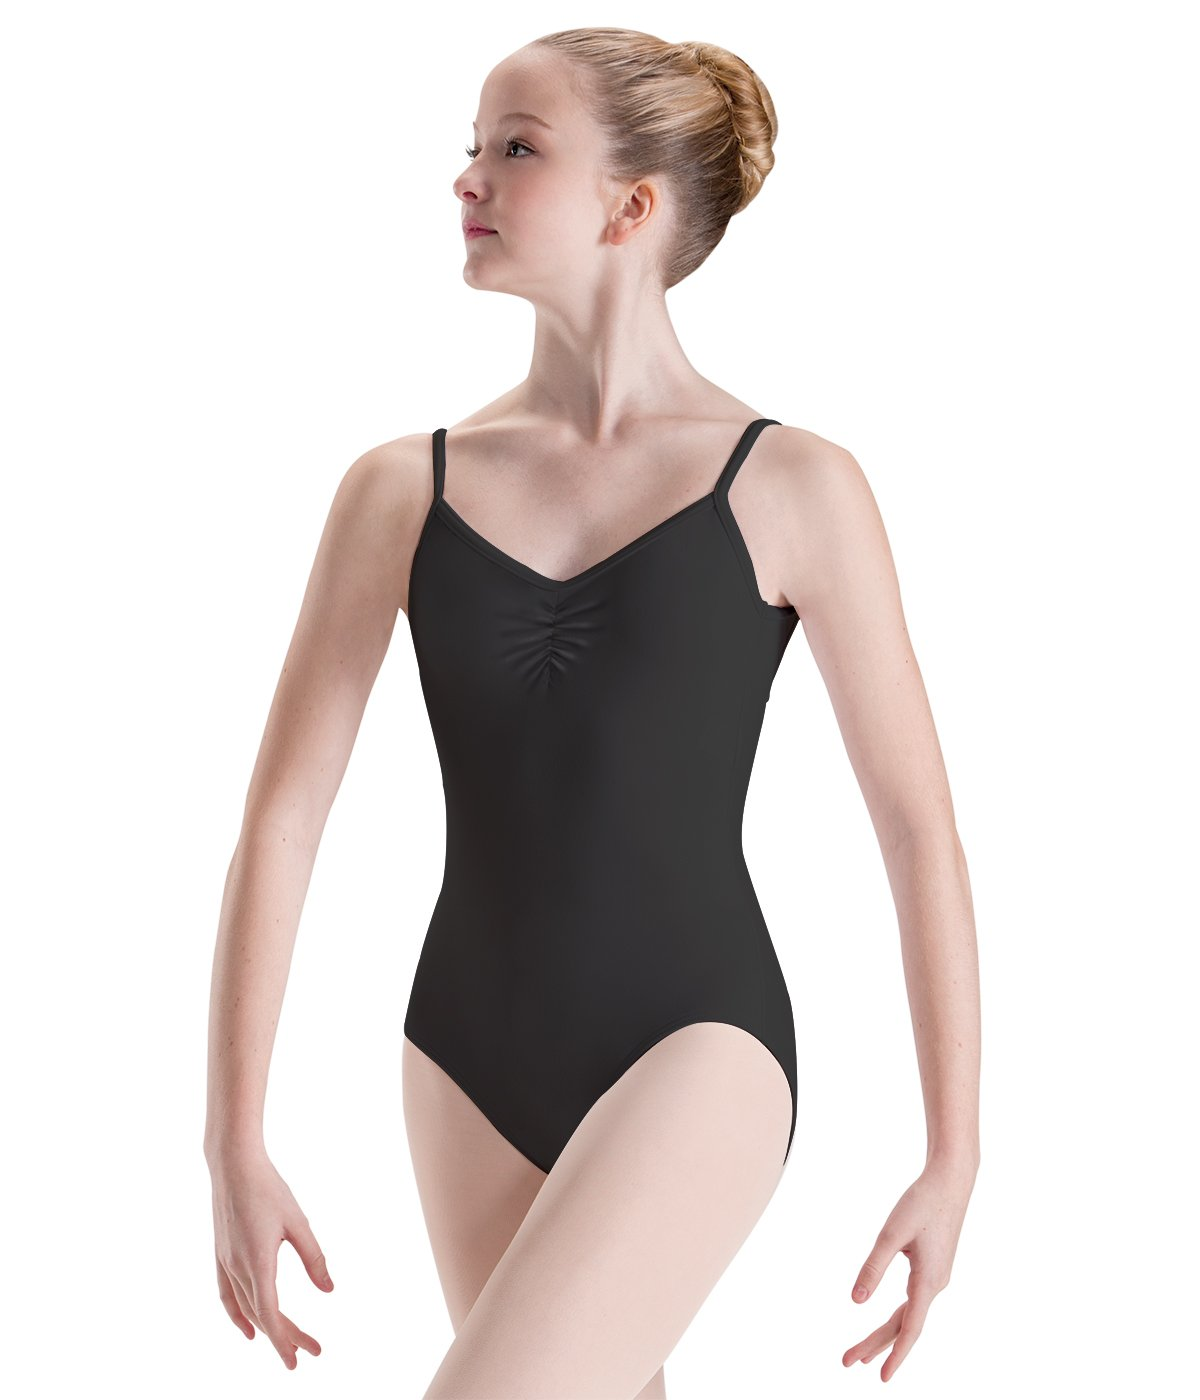 af88f6f8d Adult Leotards